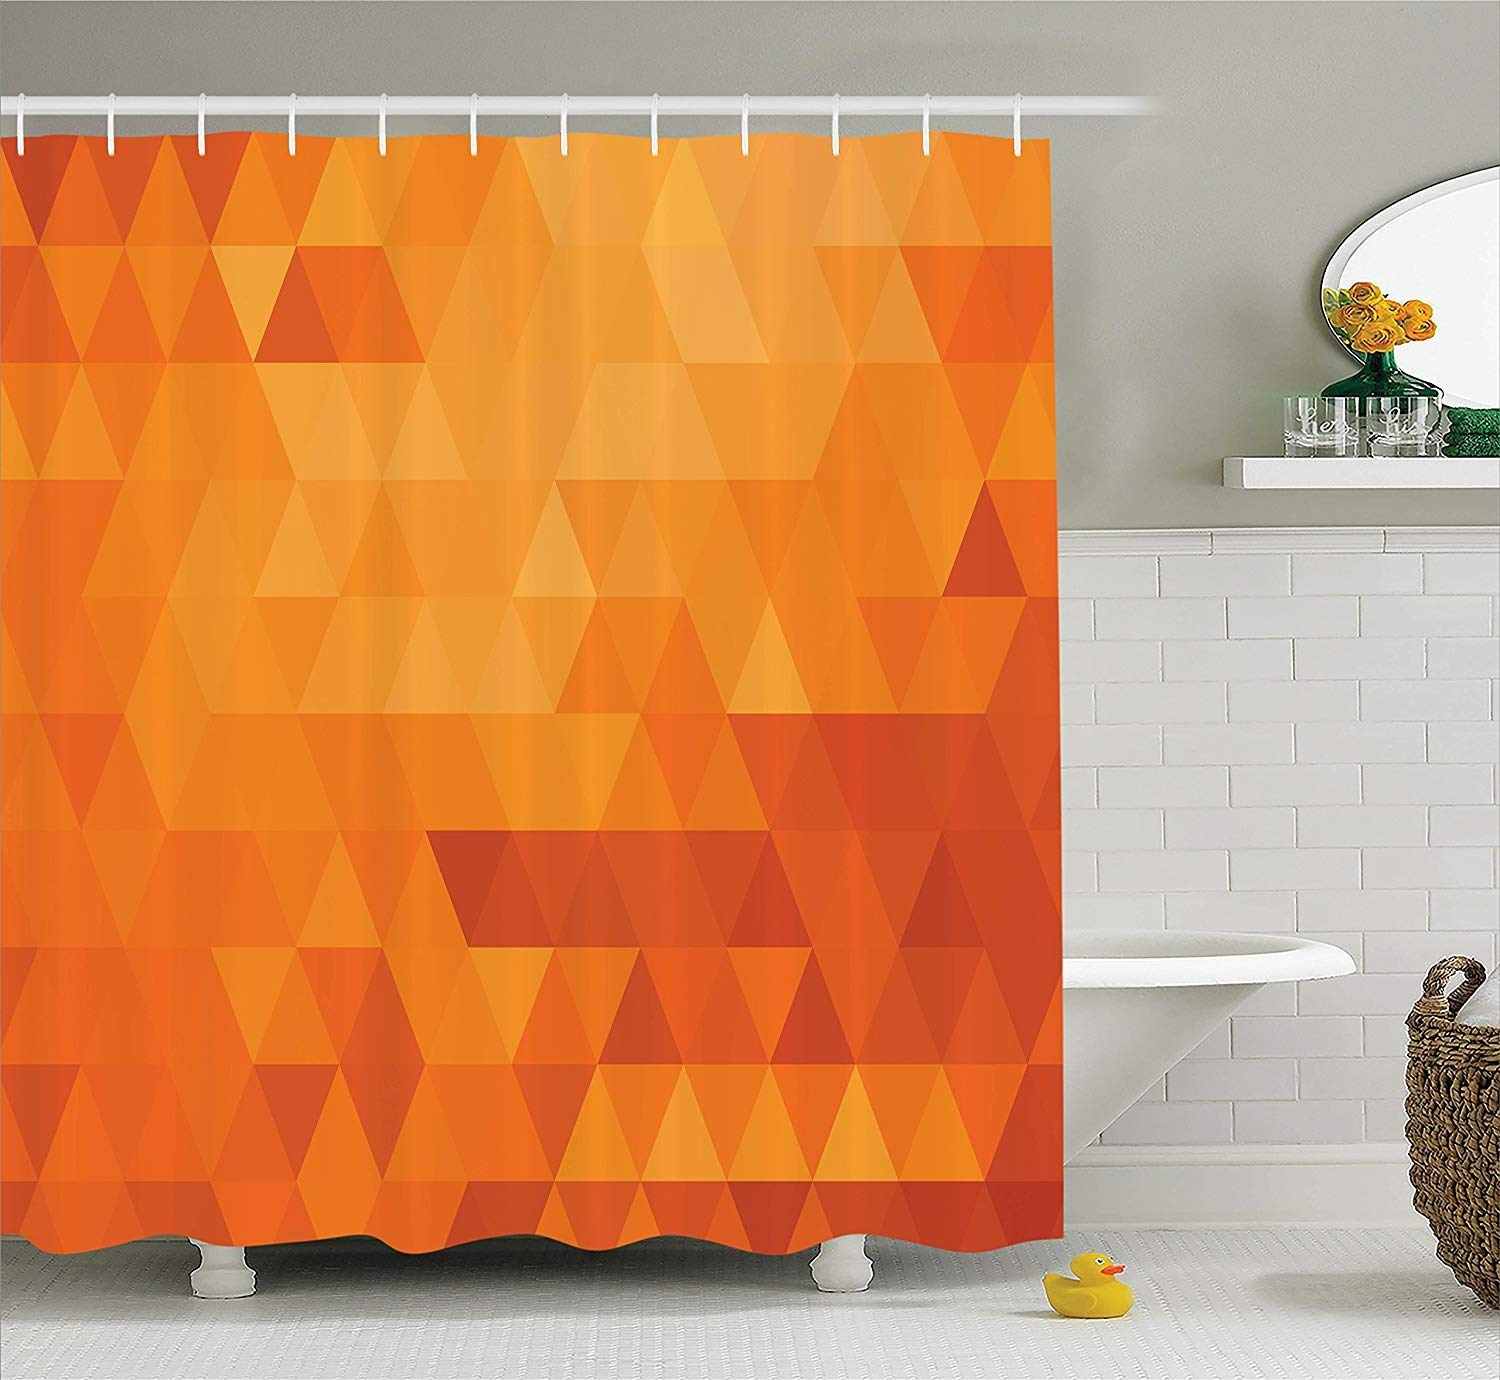 bag pack home Burnt Orange Decor Shower Curtain Set, Triangle Mosaic Shaded Shapes And Patterns Abstract Digital Pixel Decorative Home, Bathroom Accessories, Burnt Orange 60X72 Inch